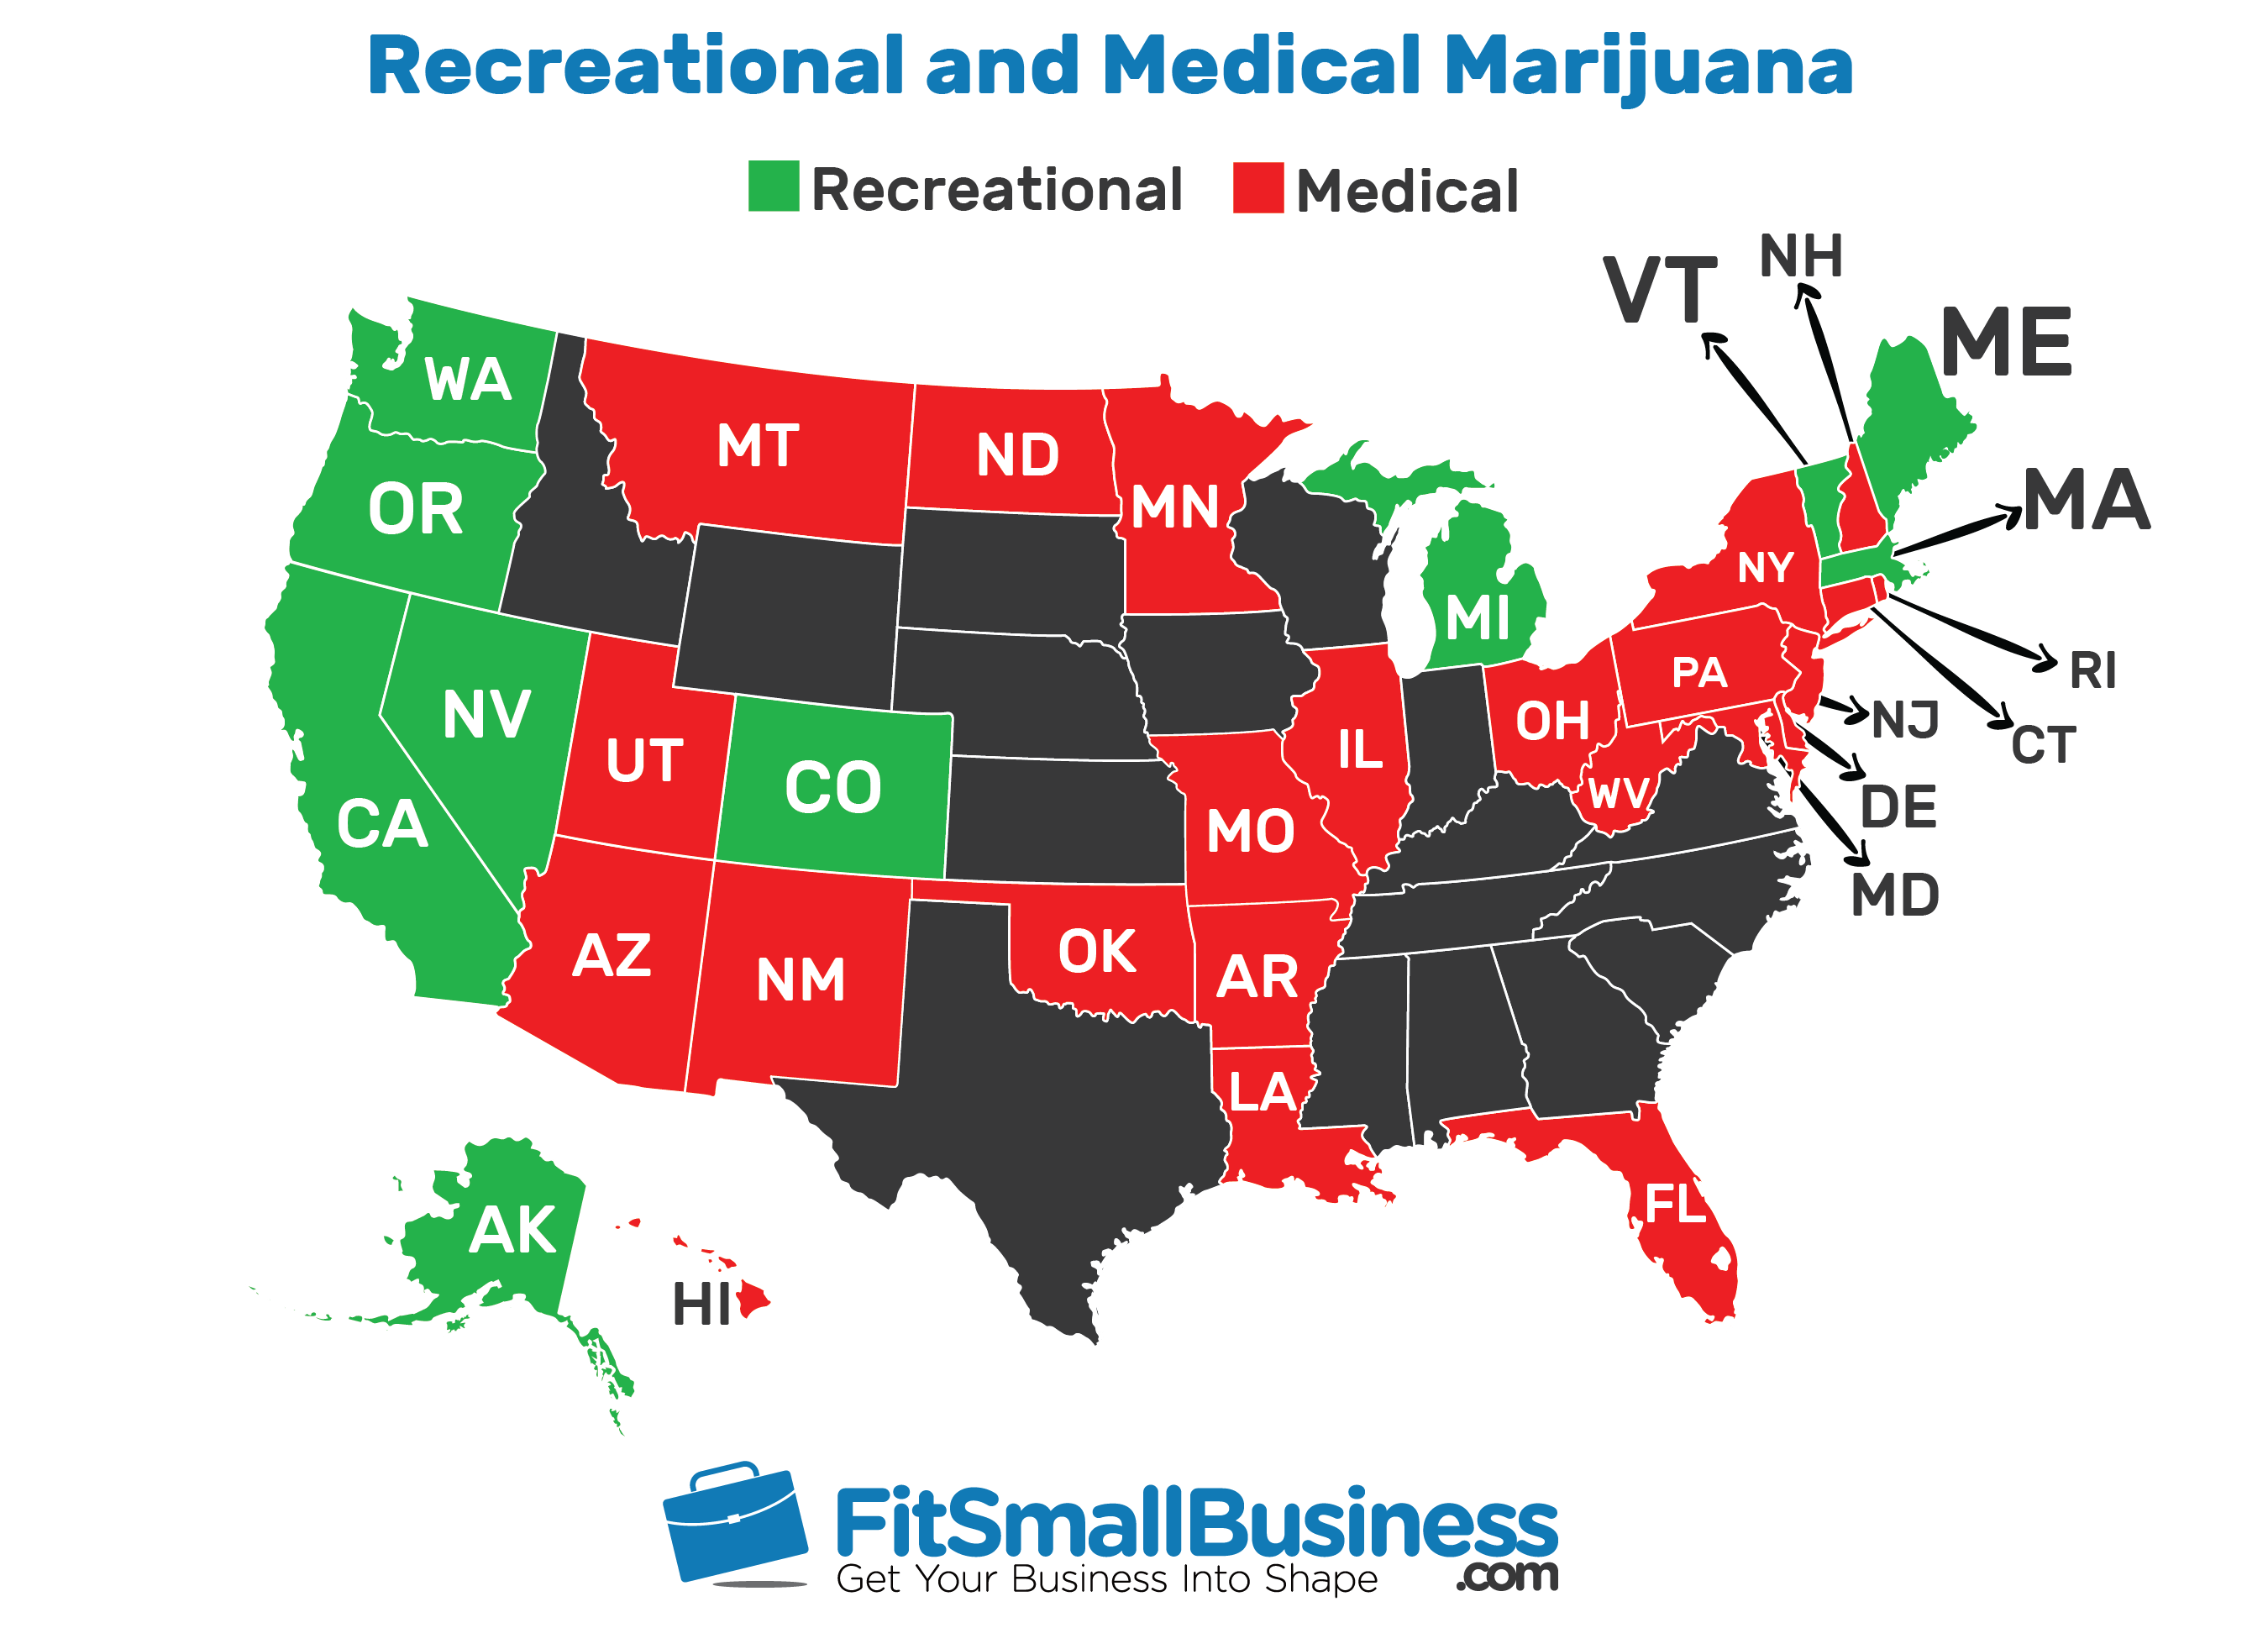 Map of where marijuana is legal for recreational and medical use